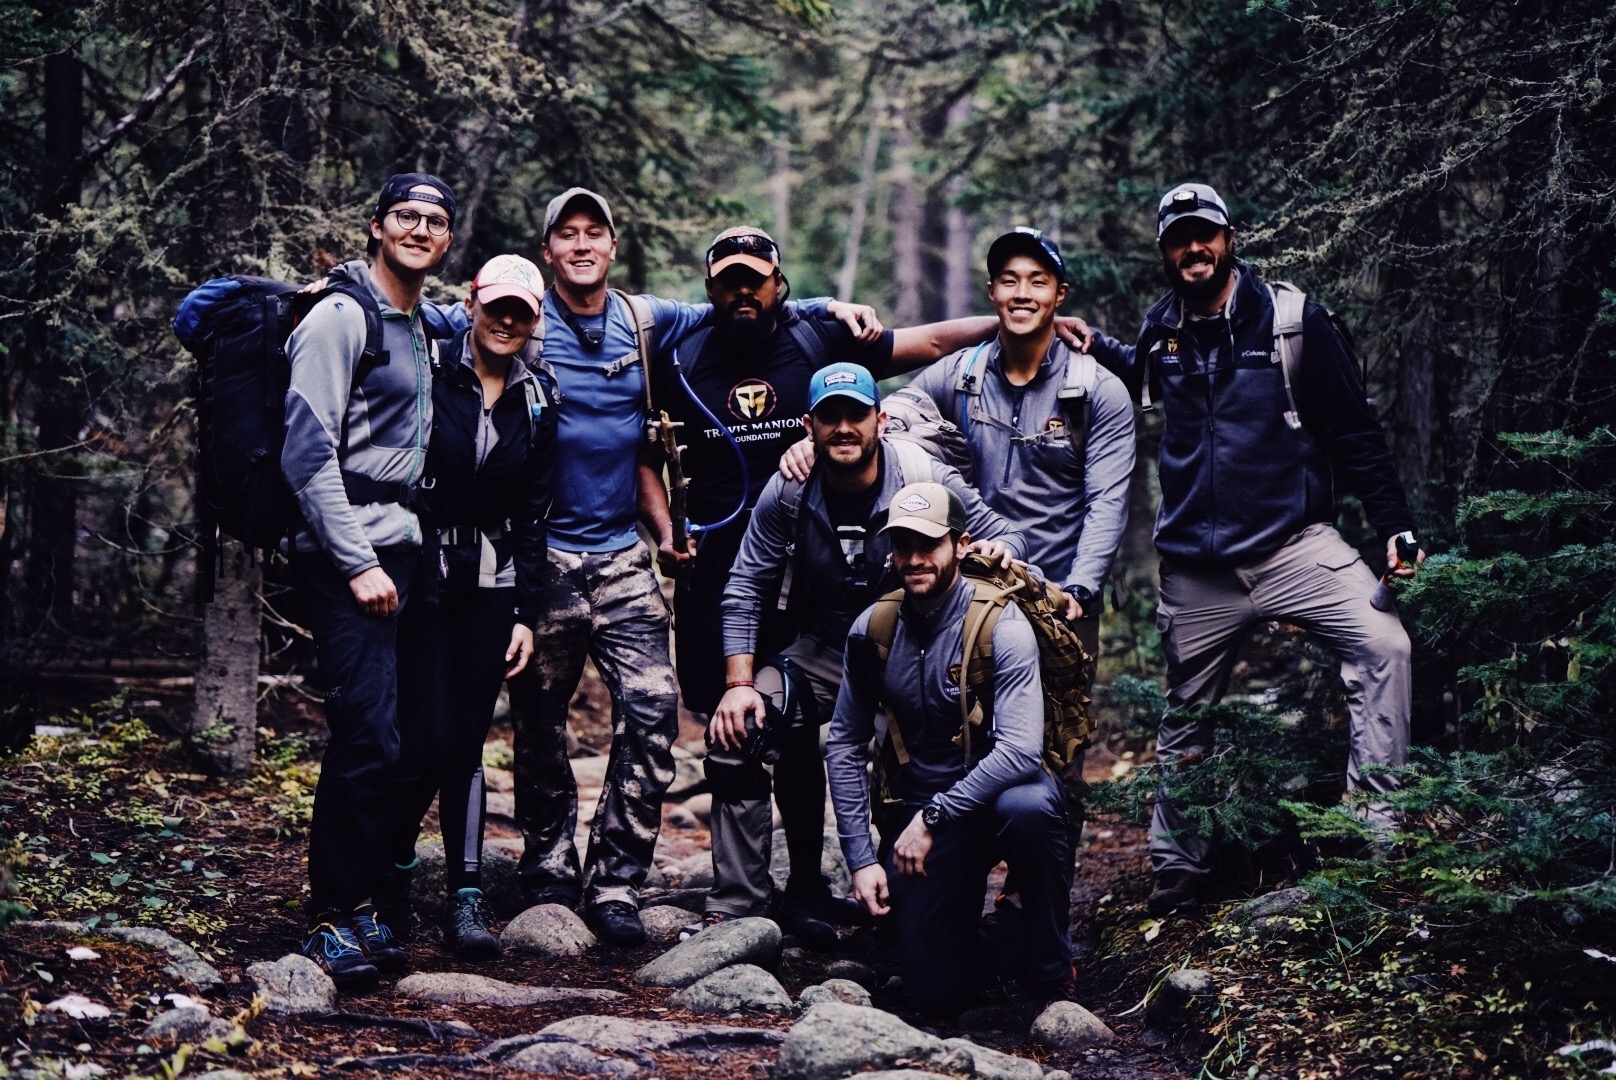 join us - Veteran Retreats - Spring 2020Adventure Camps - Coming Soon 2020